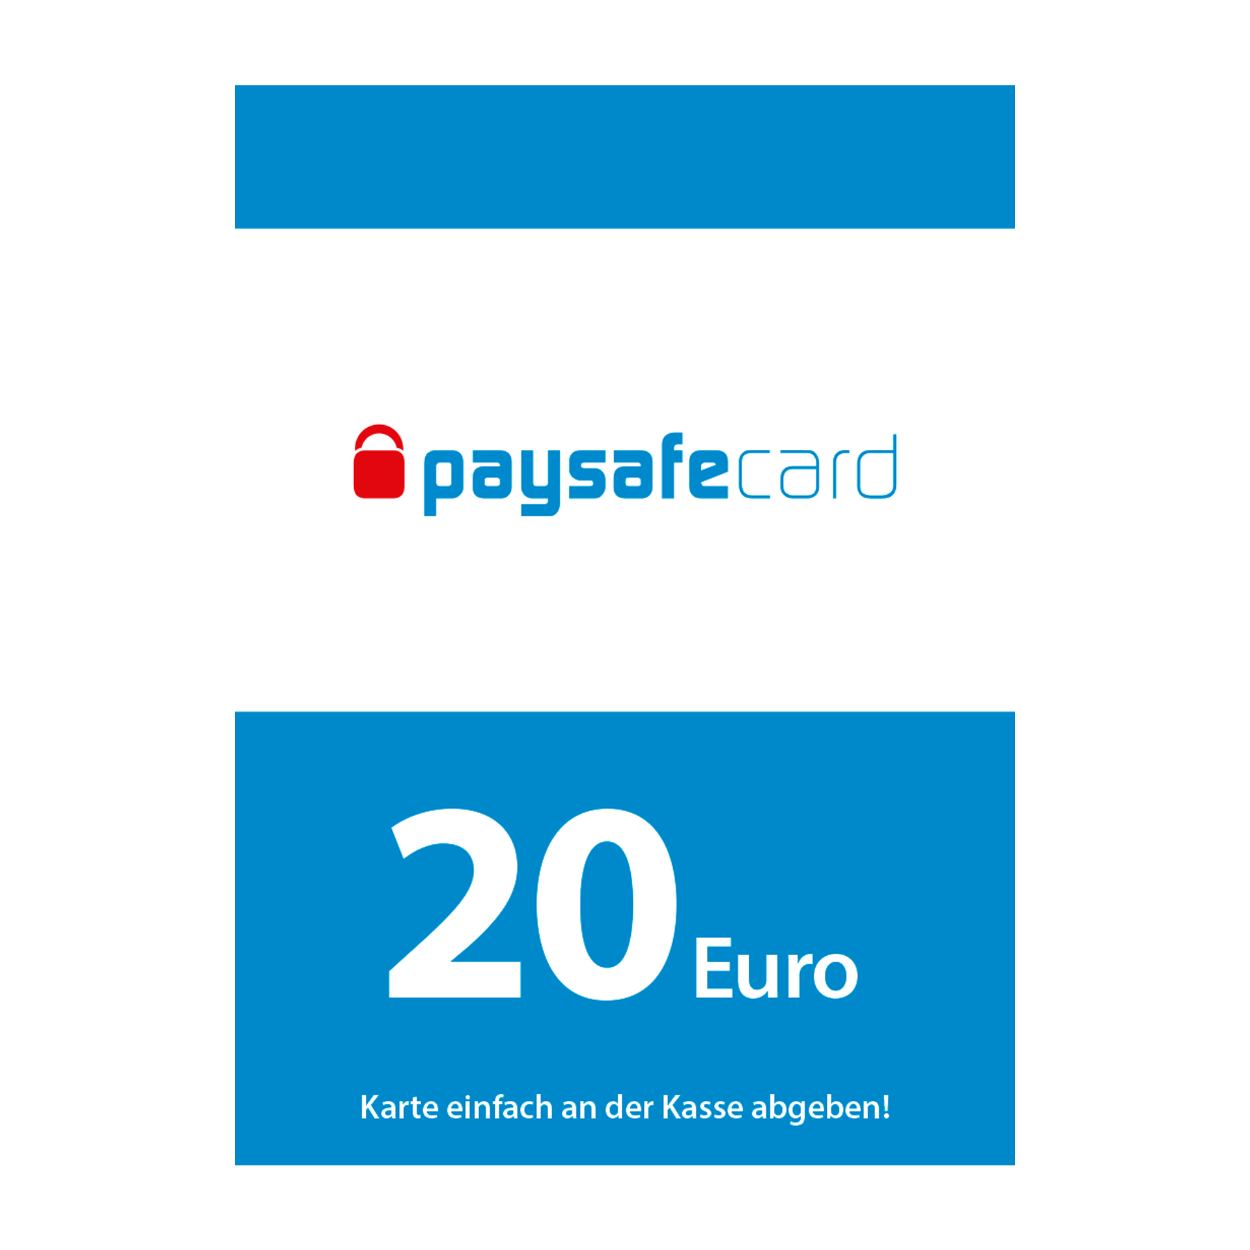 Paysafecard Germany